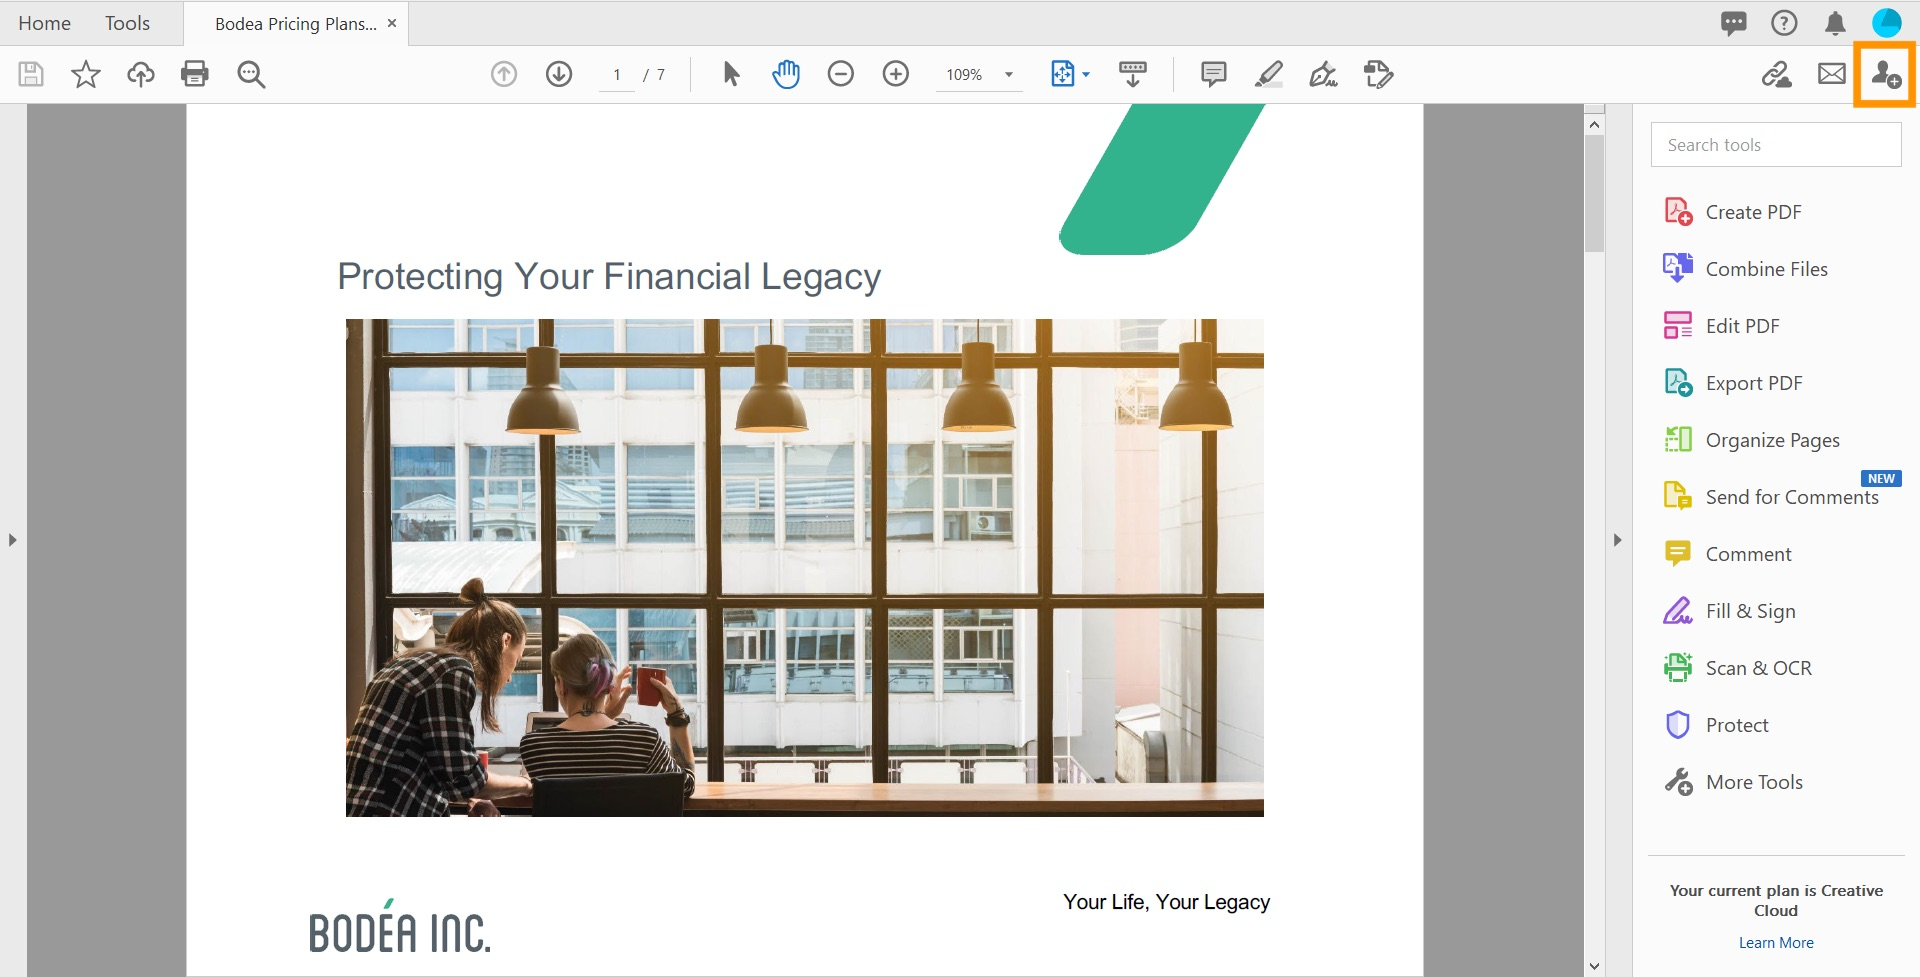 The Bodea brochure titled Protecting your Financial Legacy appears alongside the Acrobat DC workspace with the Share button selected and the new menu item Send for Comments highlighted.